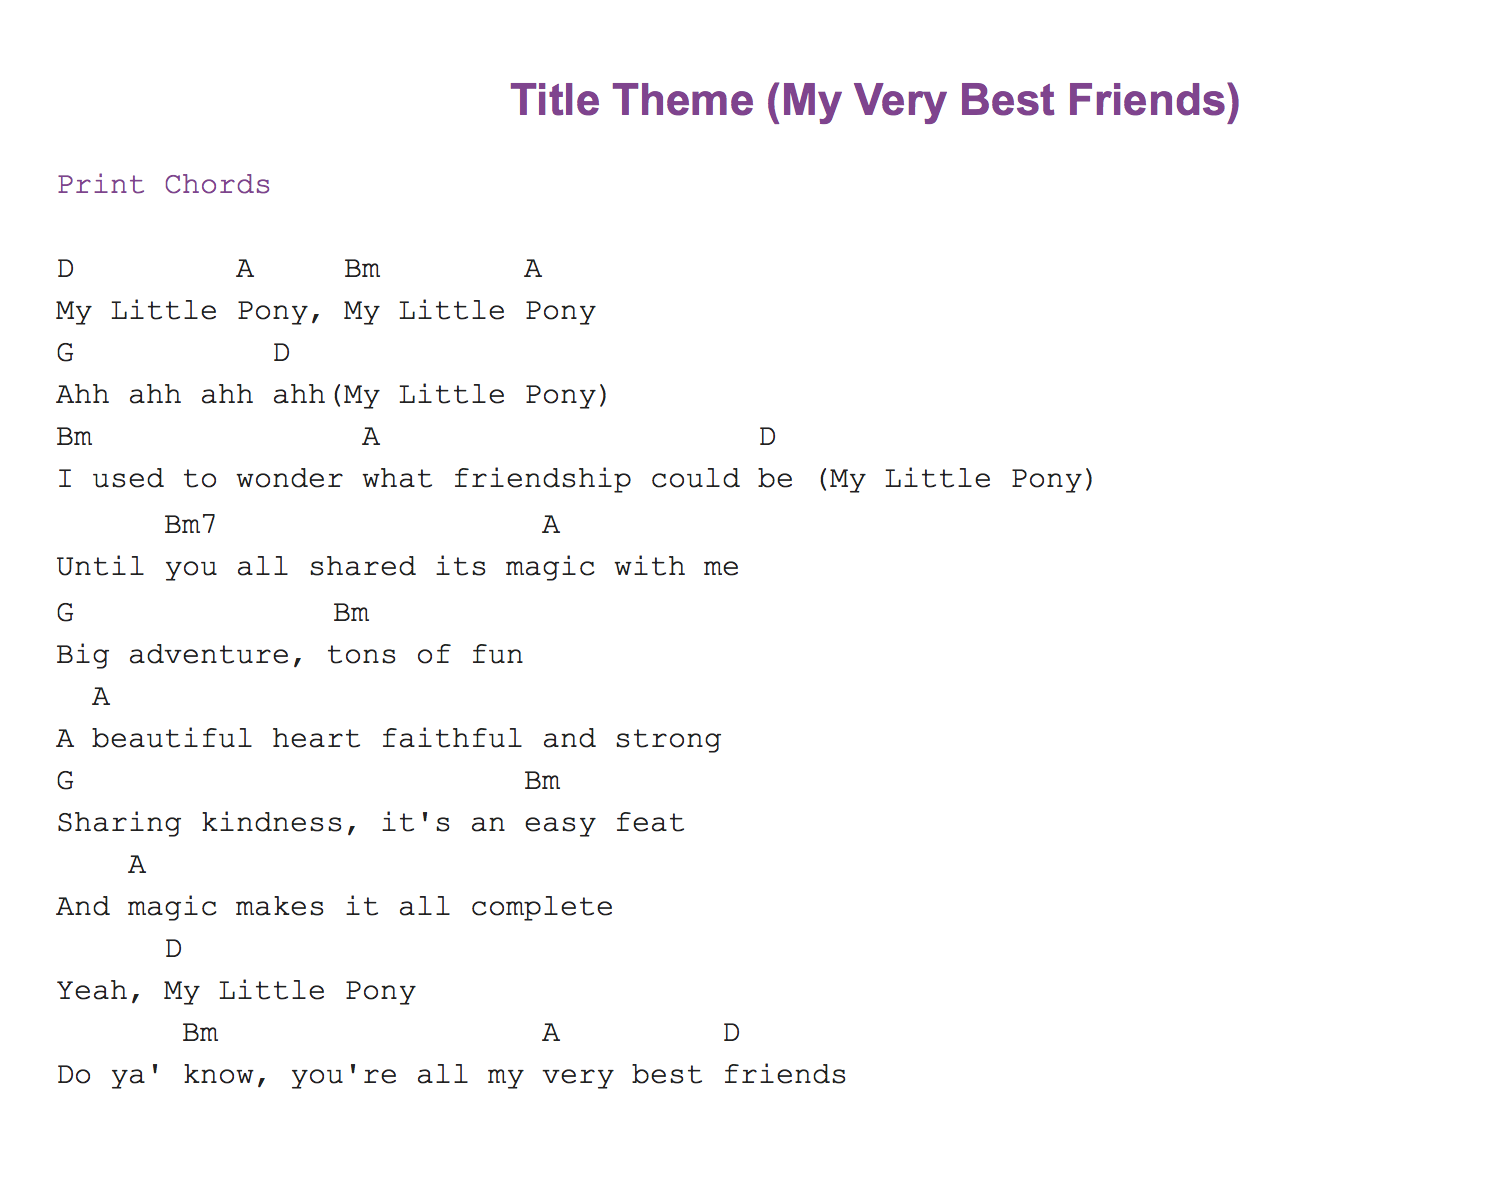 My little pony theme music pinterest guitar chords sheet come here for lyrics sheet music and guitar chords and tabs for all the mlpfim songs hexwebz Images